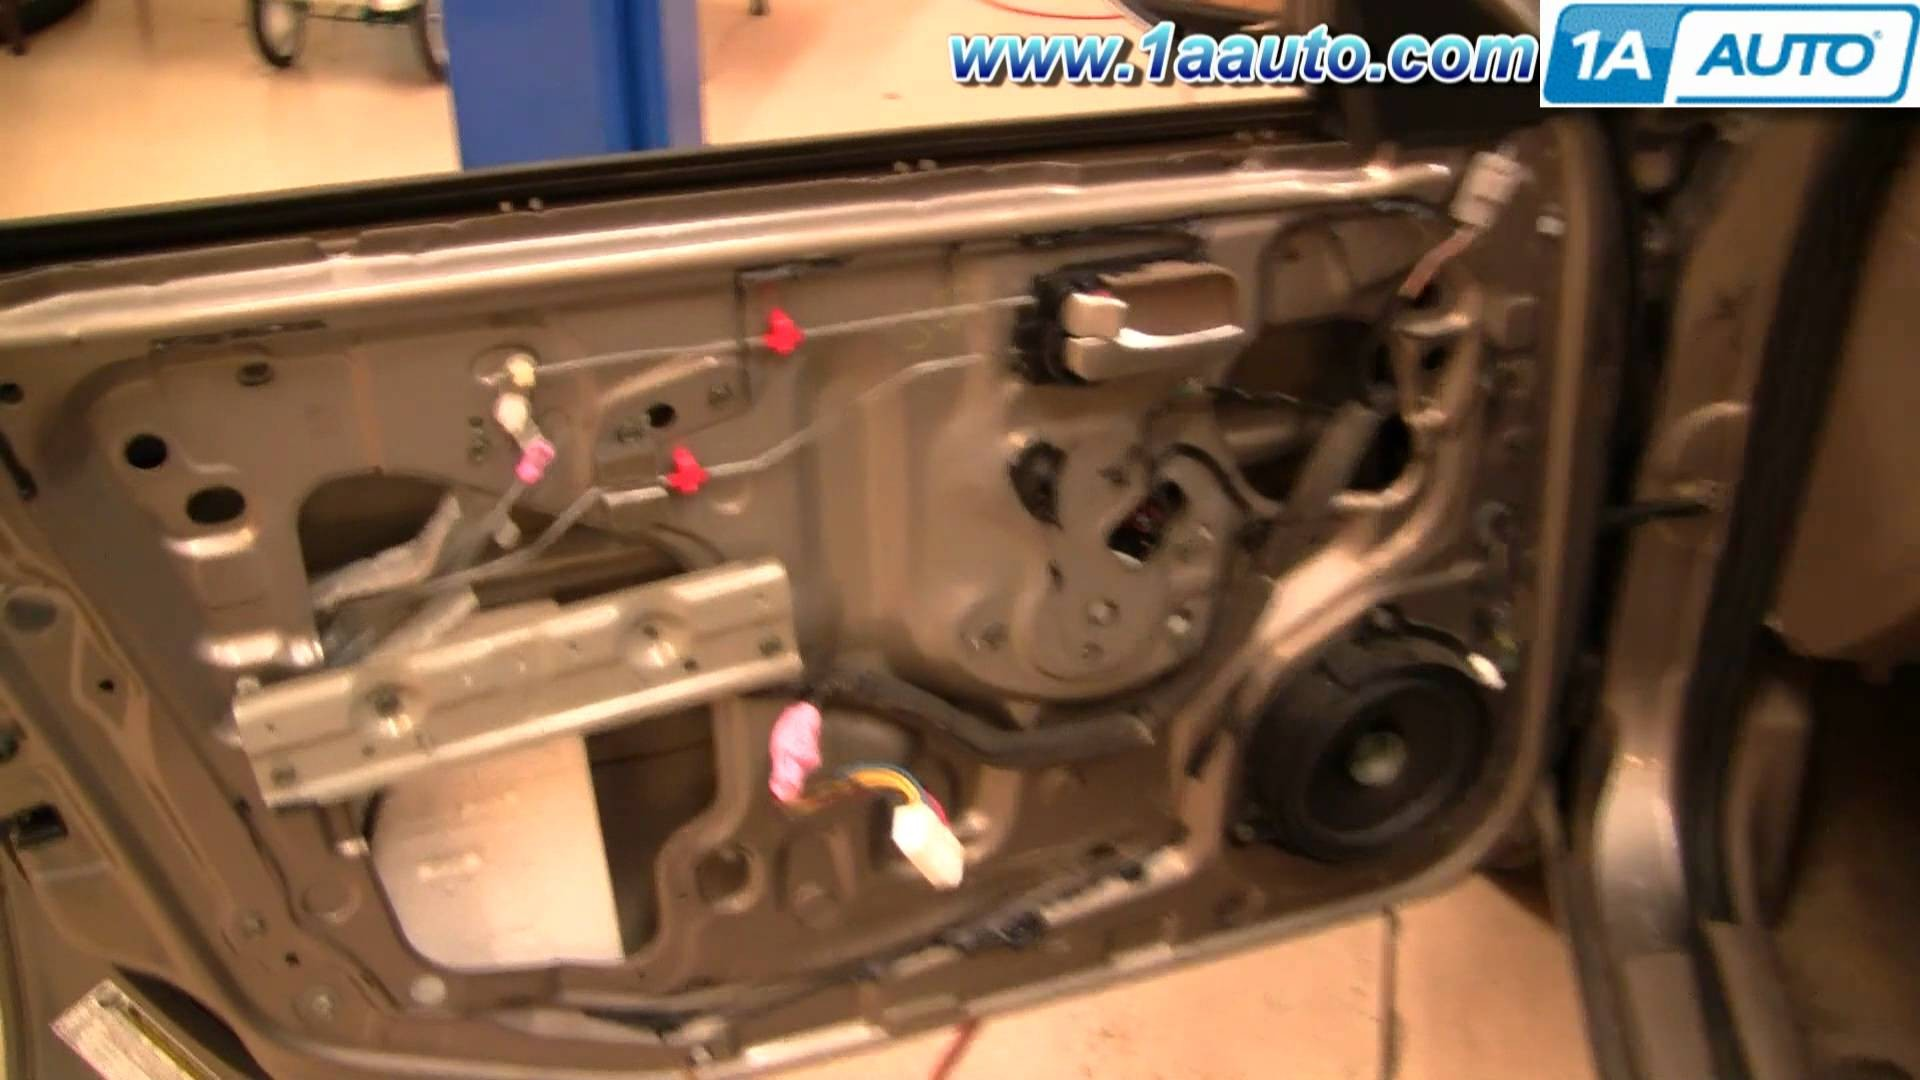 1994 Nissan Sentra Engine Diagram Likewise 2001 Pathfinder How To Install Replace Power Window Motor Or Regulator